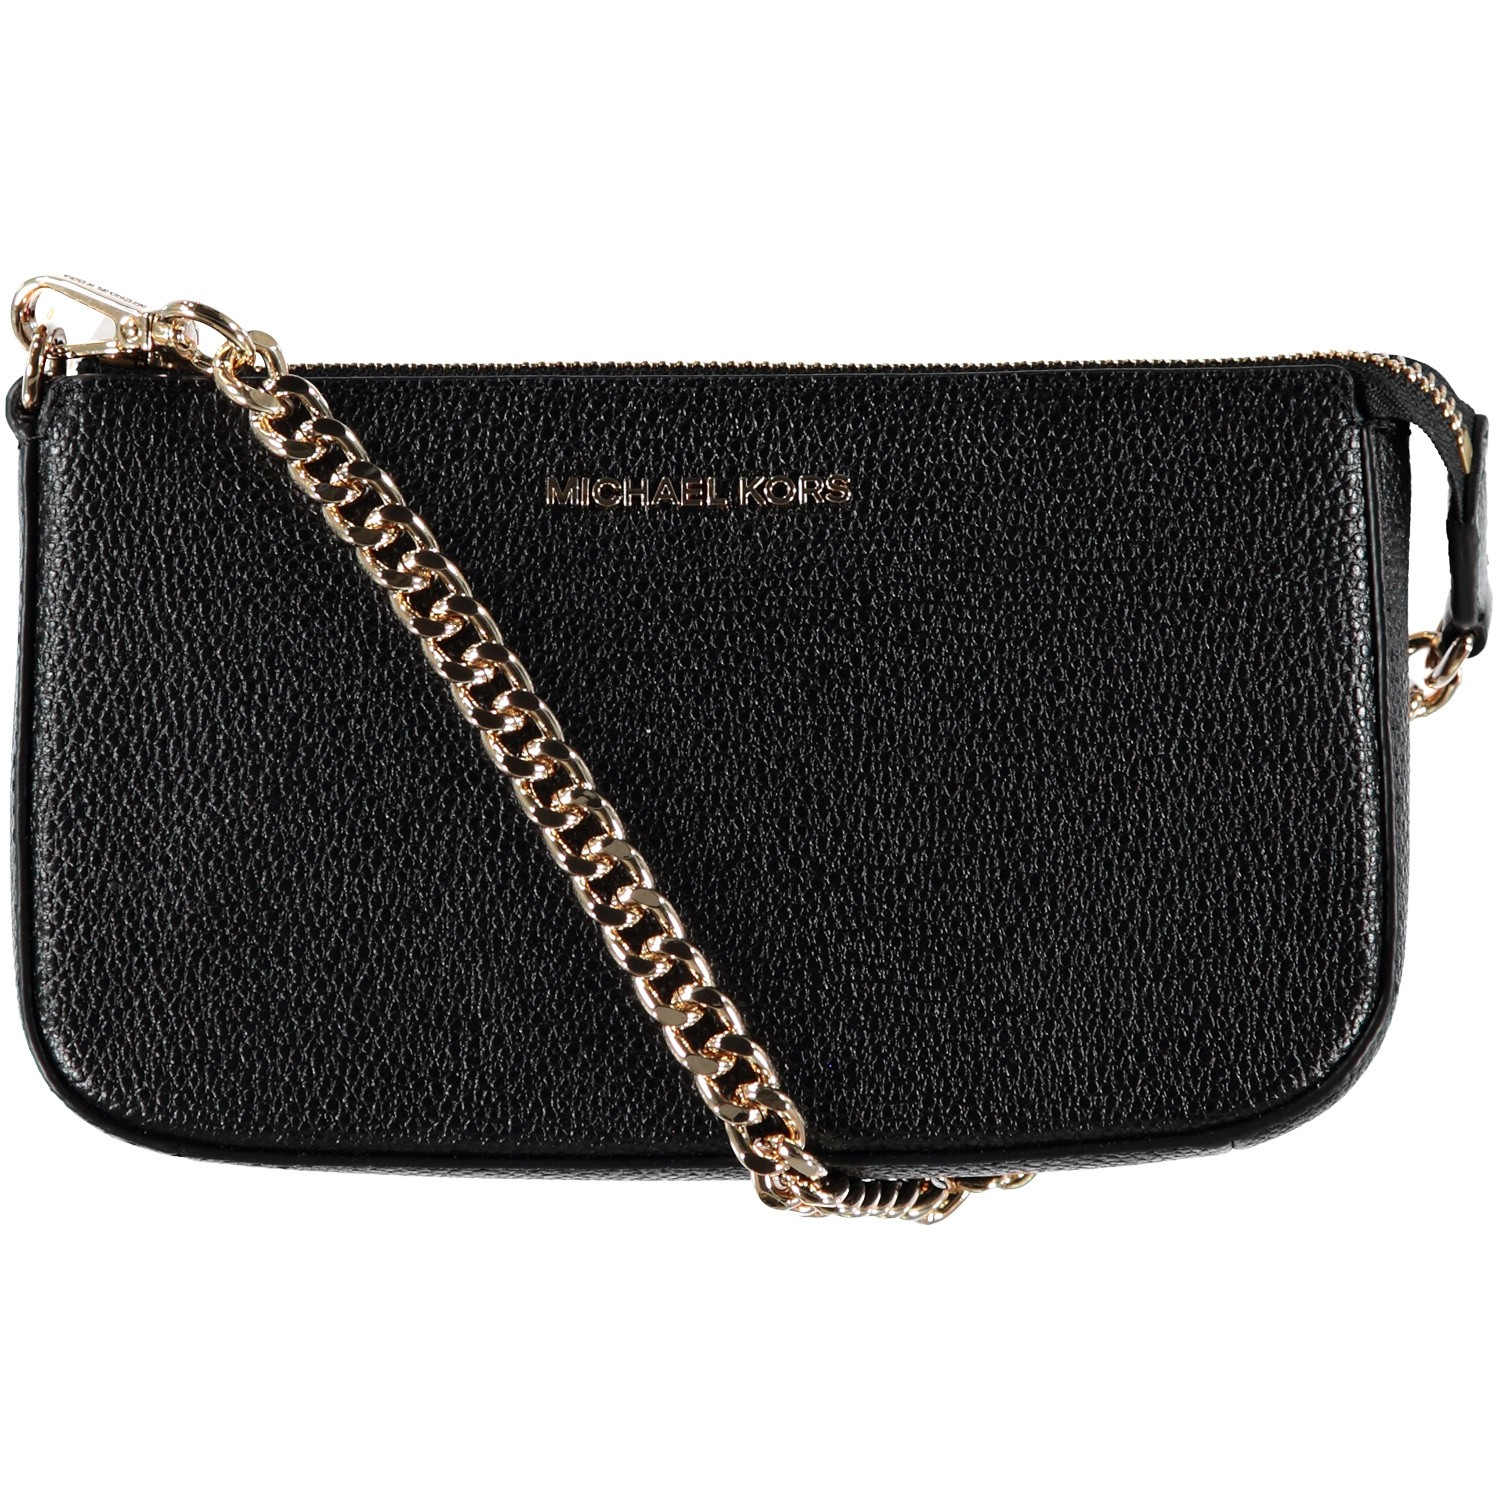 Picture of Michael Kors 32F7GFDW6L womens bag black